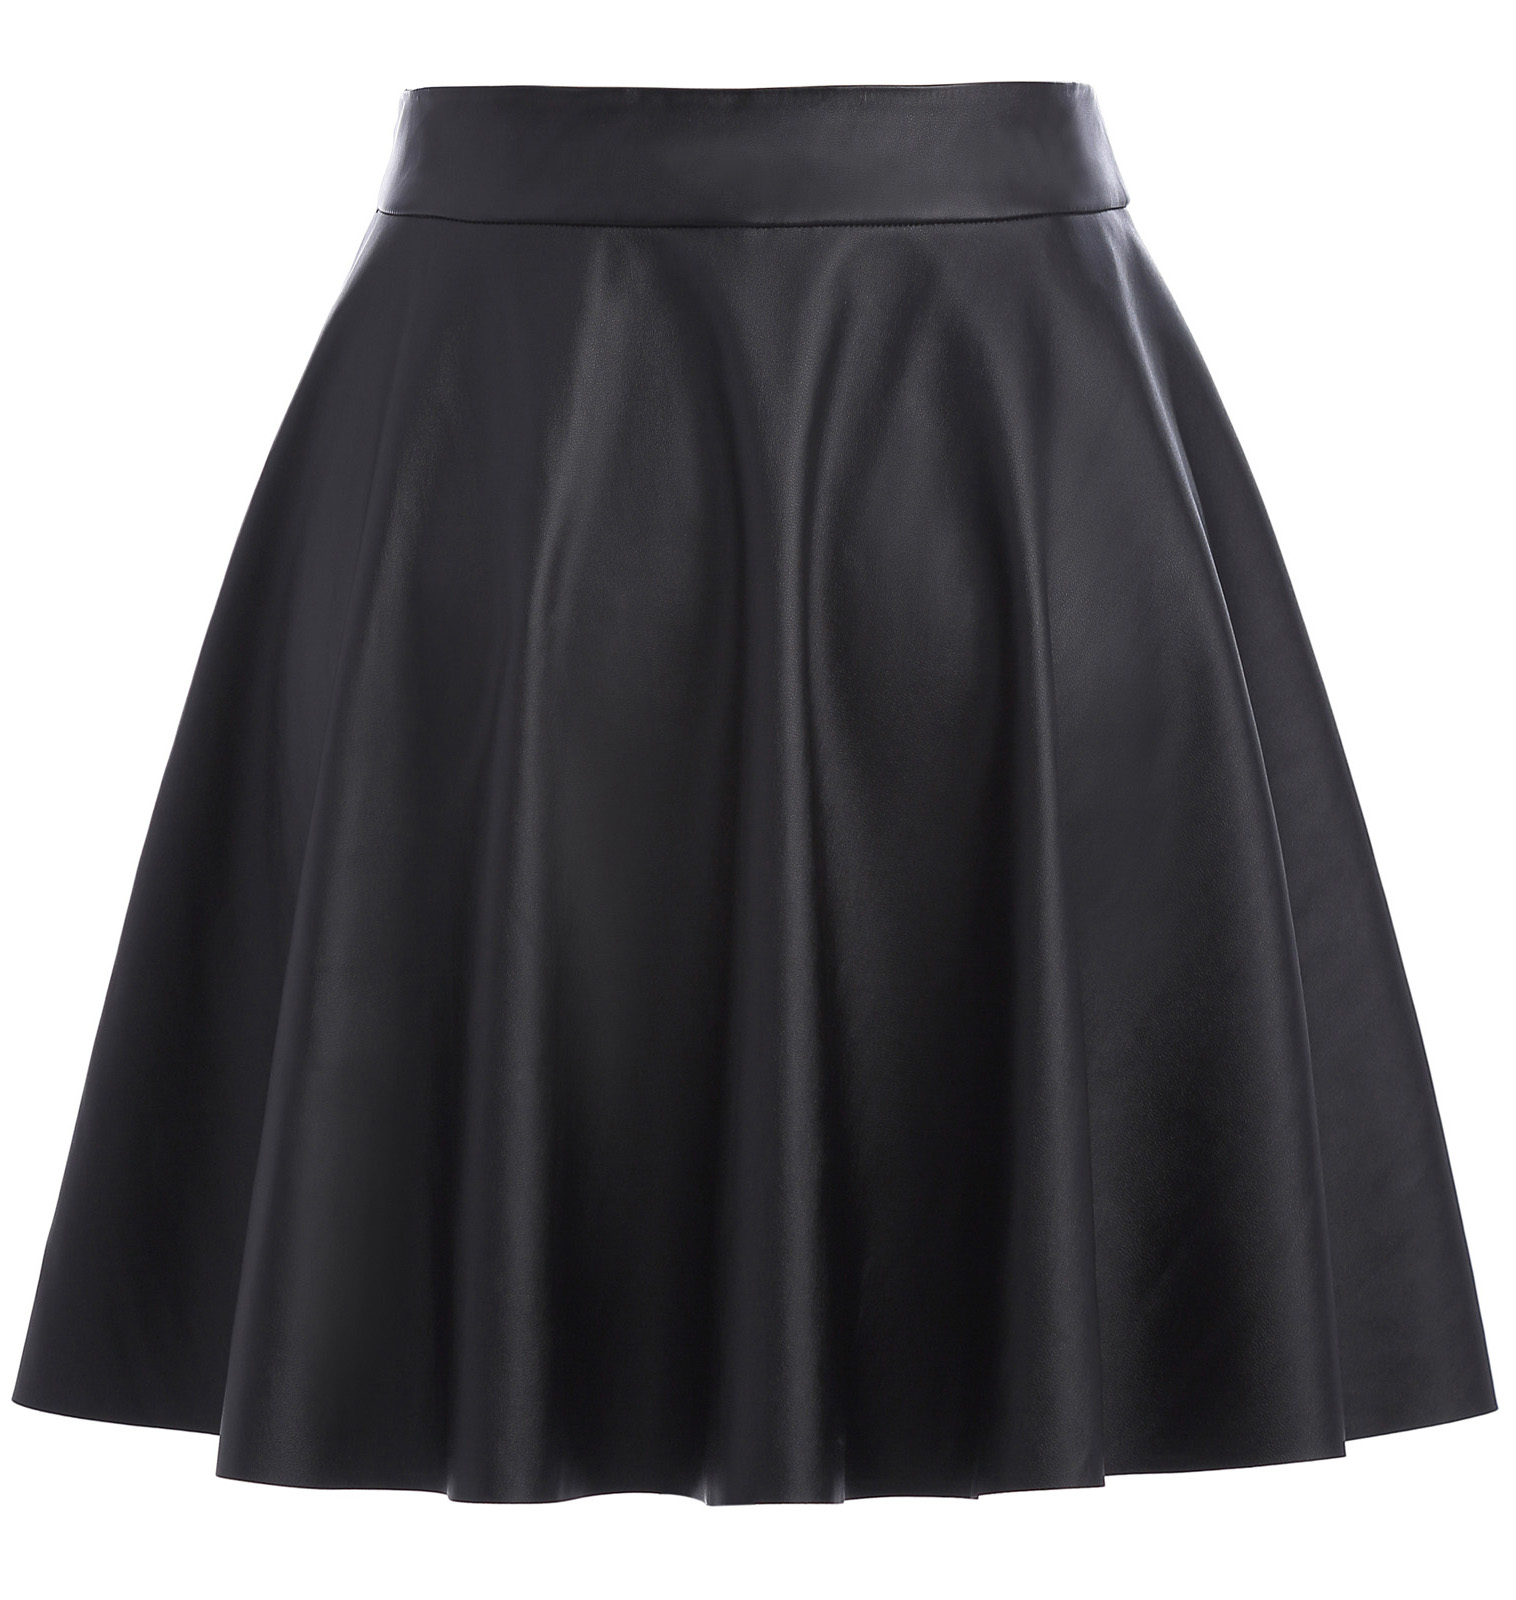 hot 2018 summer skirt Women Basic Casual Synthetic Leather Flared A-Line Mini Skirt preppy style